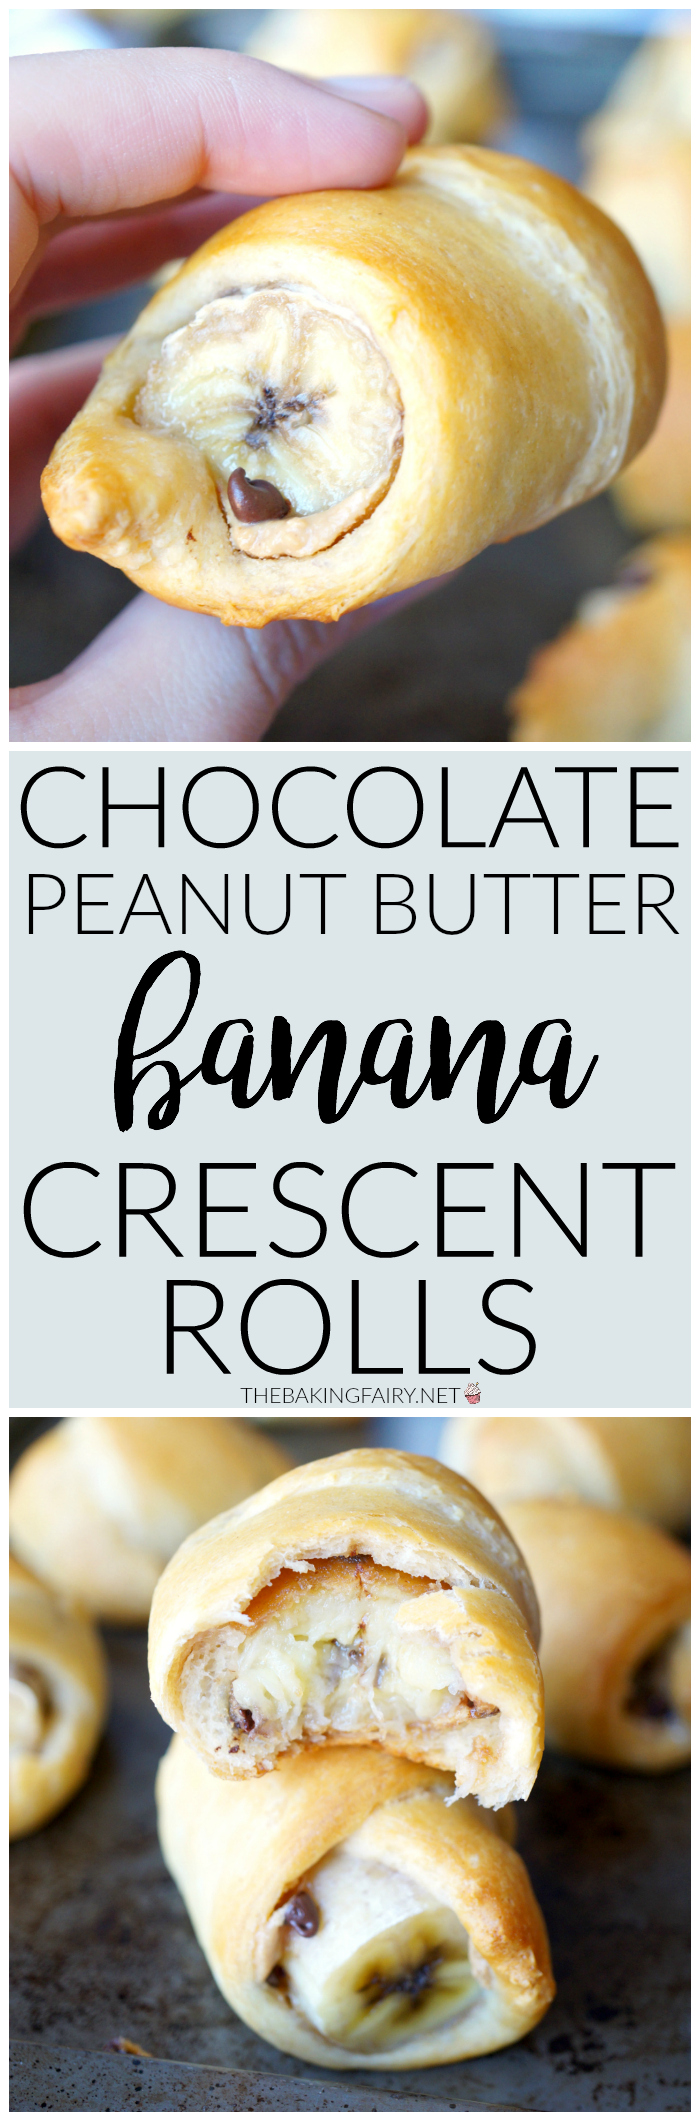 chocolate peanut butter banana crescents | The Baking Fairy